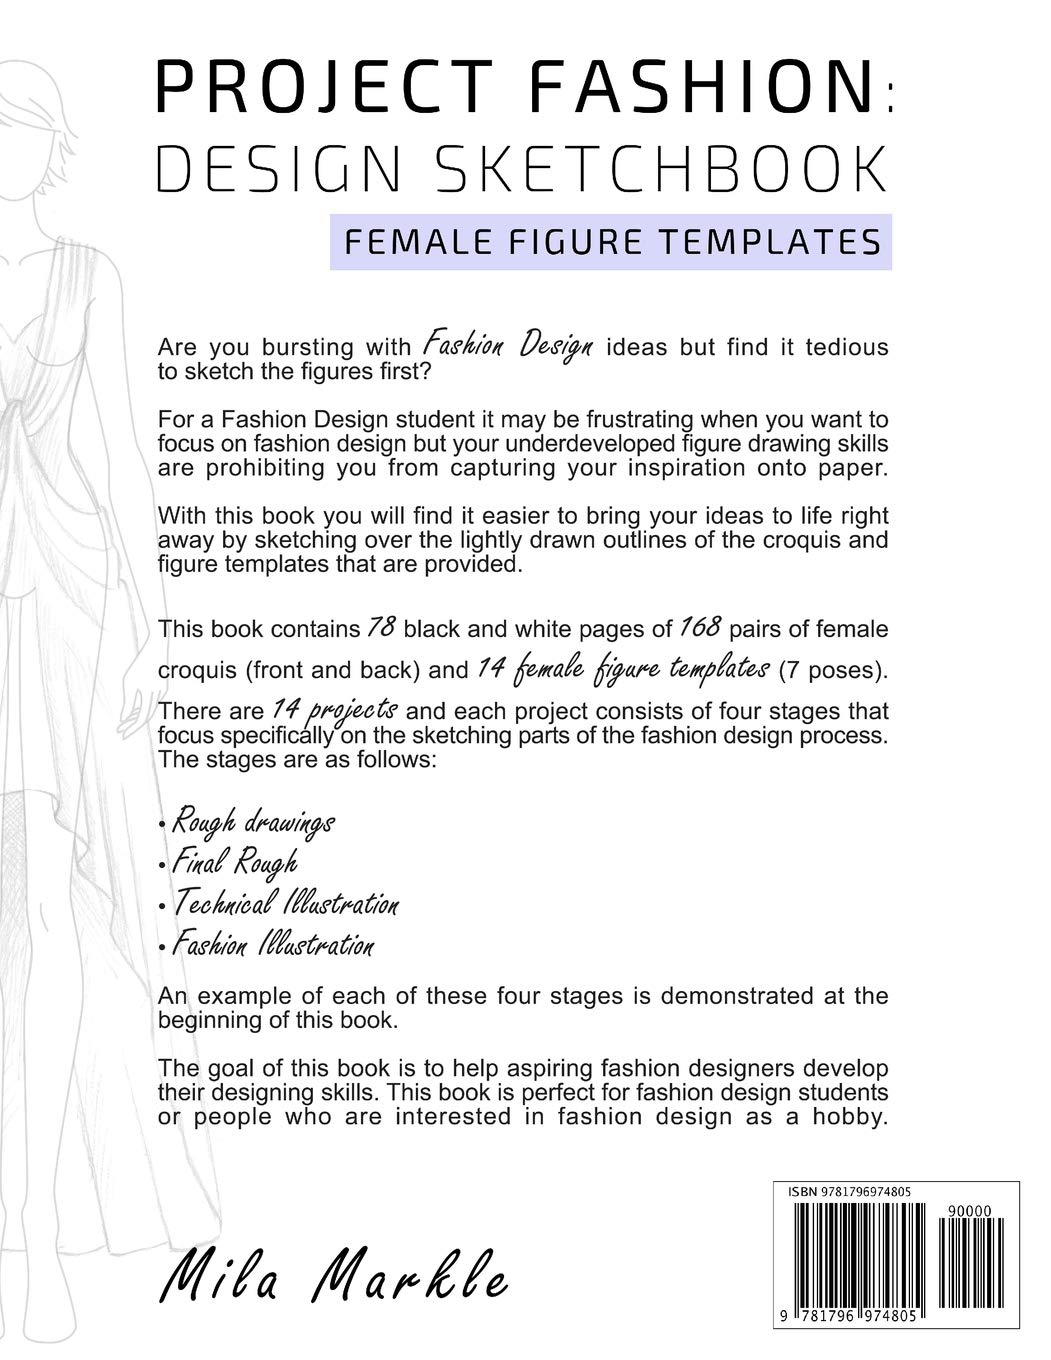 Buy Project Fashion Design Sketchbook Female Figure Templates Designing Clothes Illustration Technical Drawing Book Online At Low Prices In India Project Fashion Design Sketchbook Female Figure Templates Designing Clothes Illustration